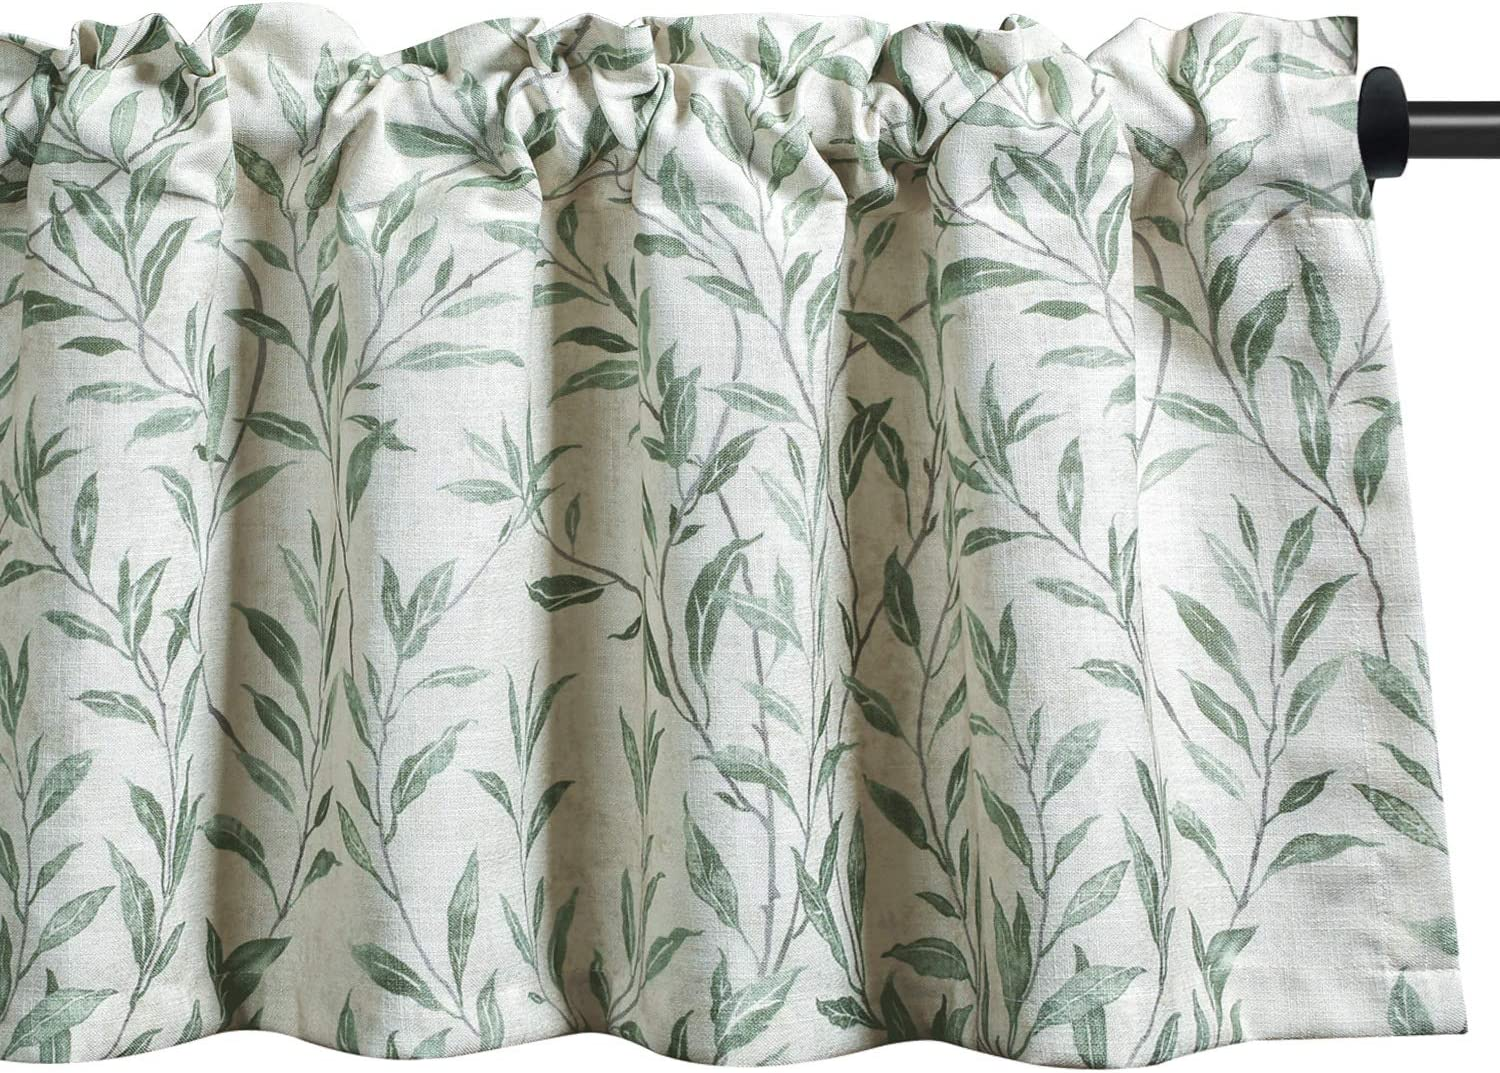 Super Special SALE held VOGOL Curtain Valances Leaves Printed Window Industry No. 1 Curtains Meticulous